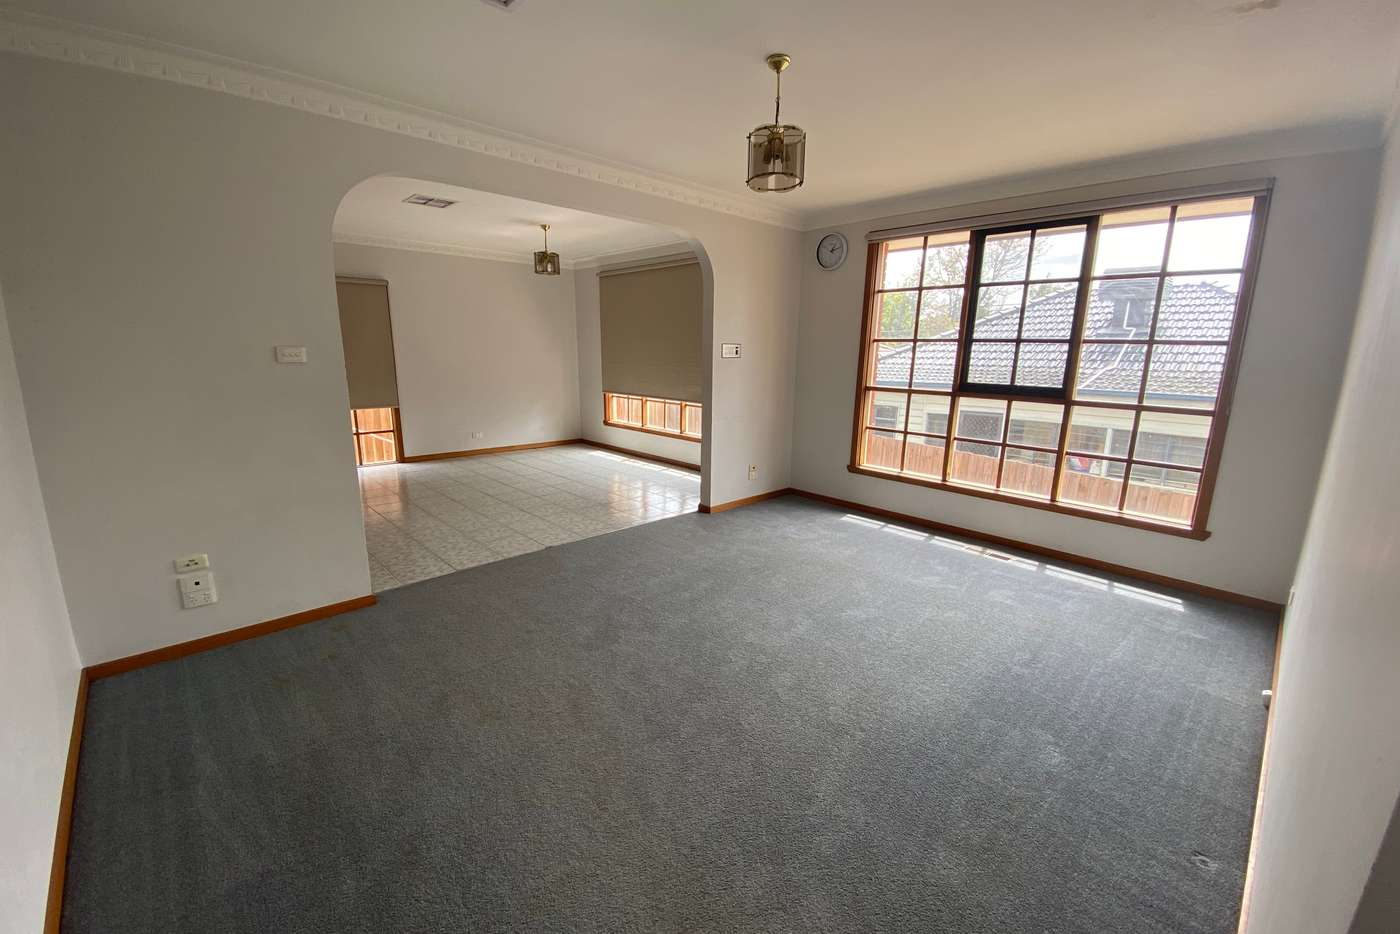 Sixth view of Homely unit listing, 9A Loeman Street, Strathmore VIC 3041